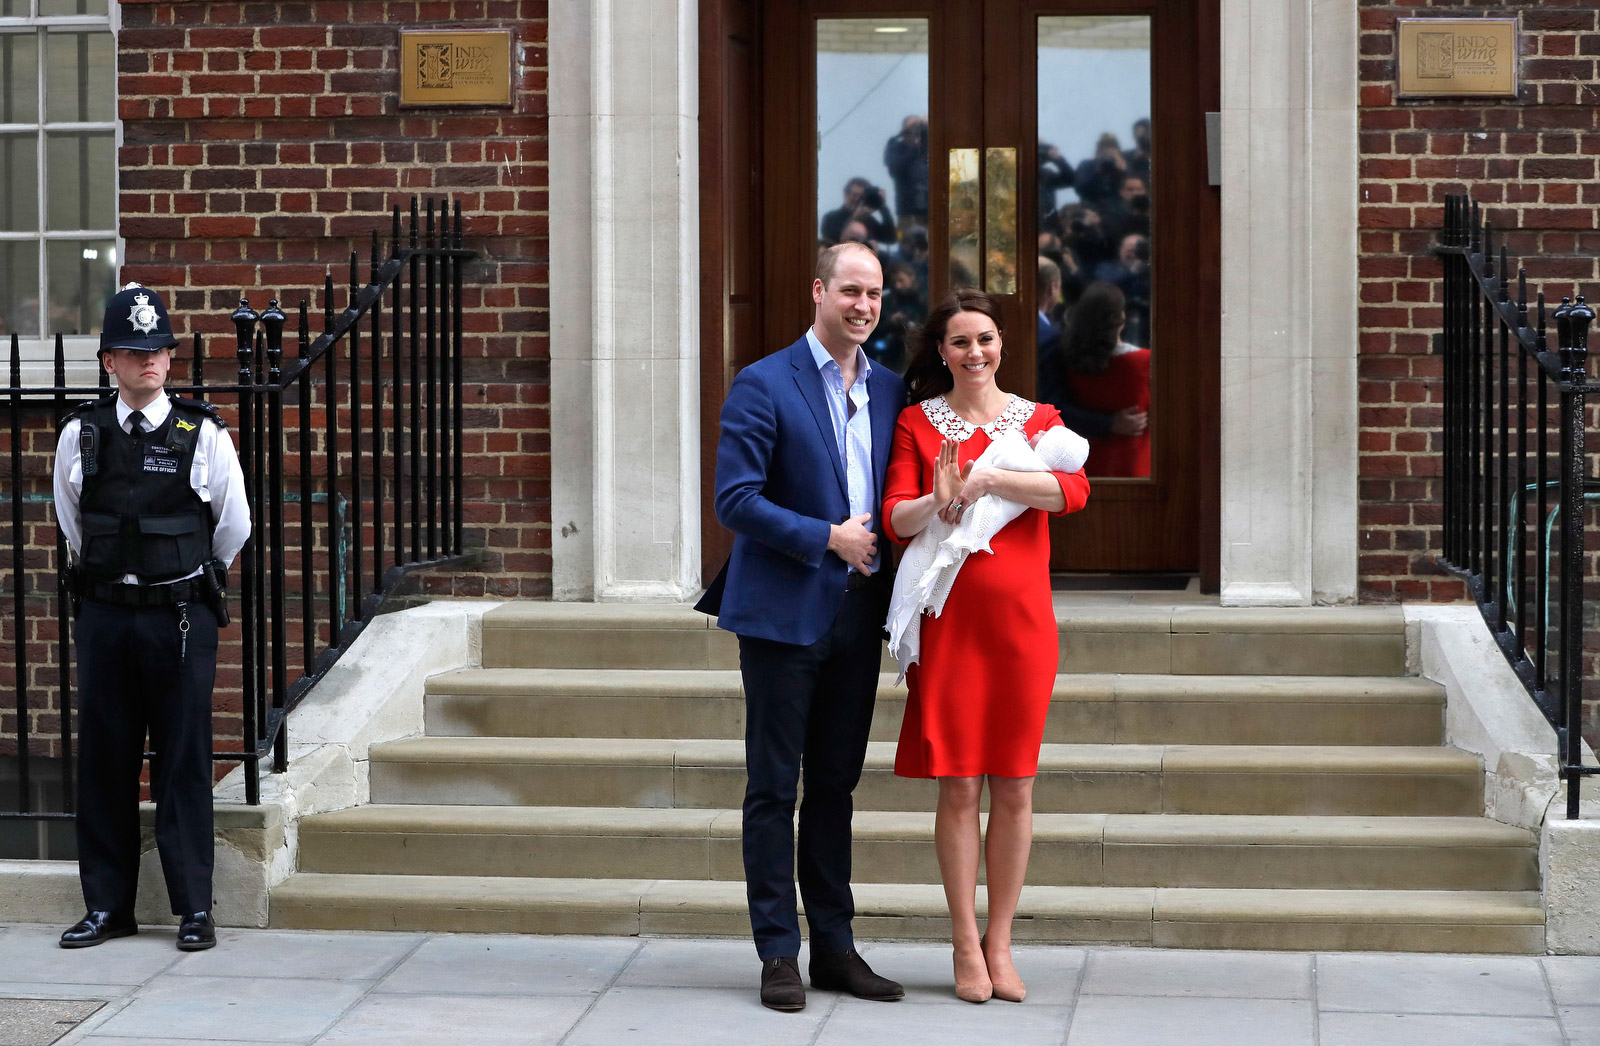 Its a boy! Photos of the new royal baby